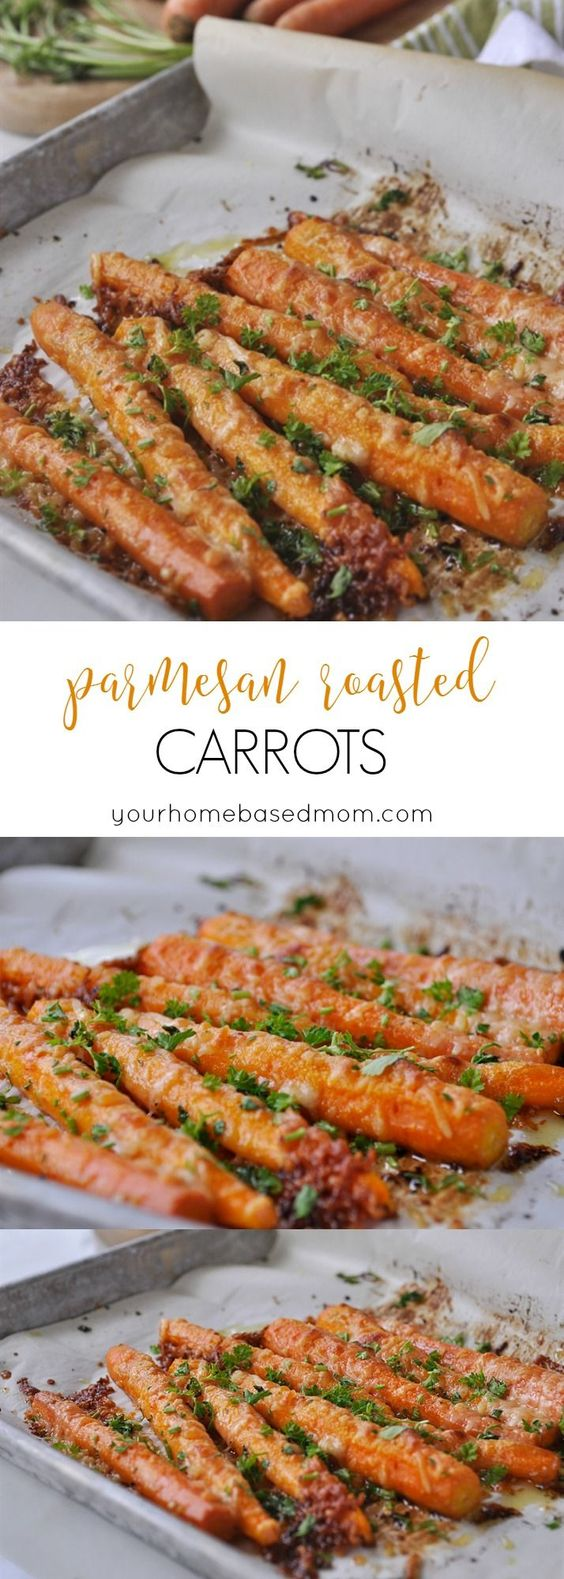 Parmesan Roasted Carrots.